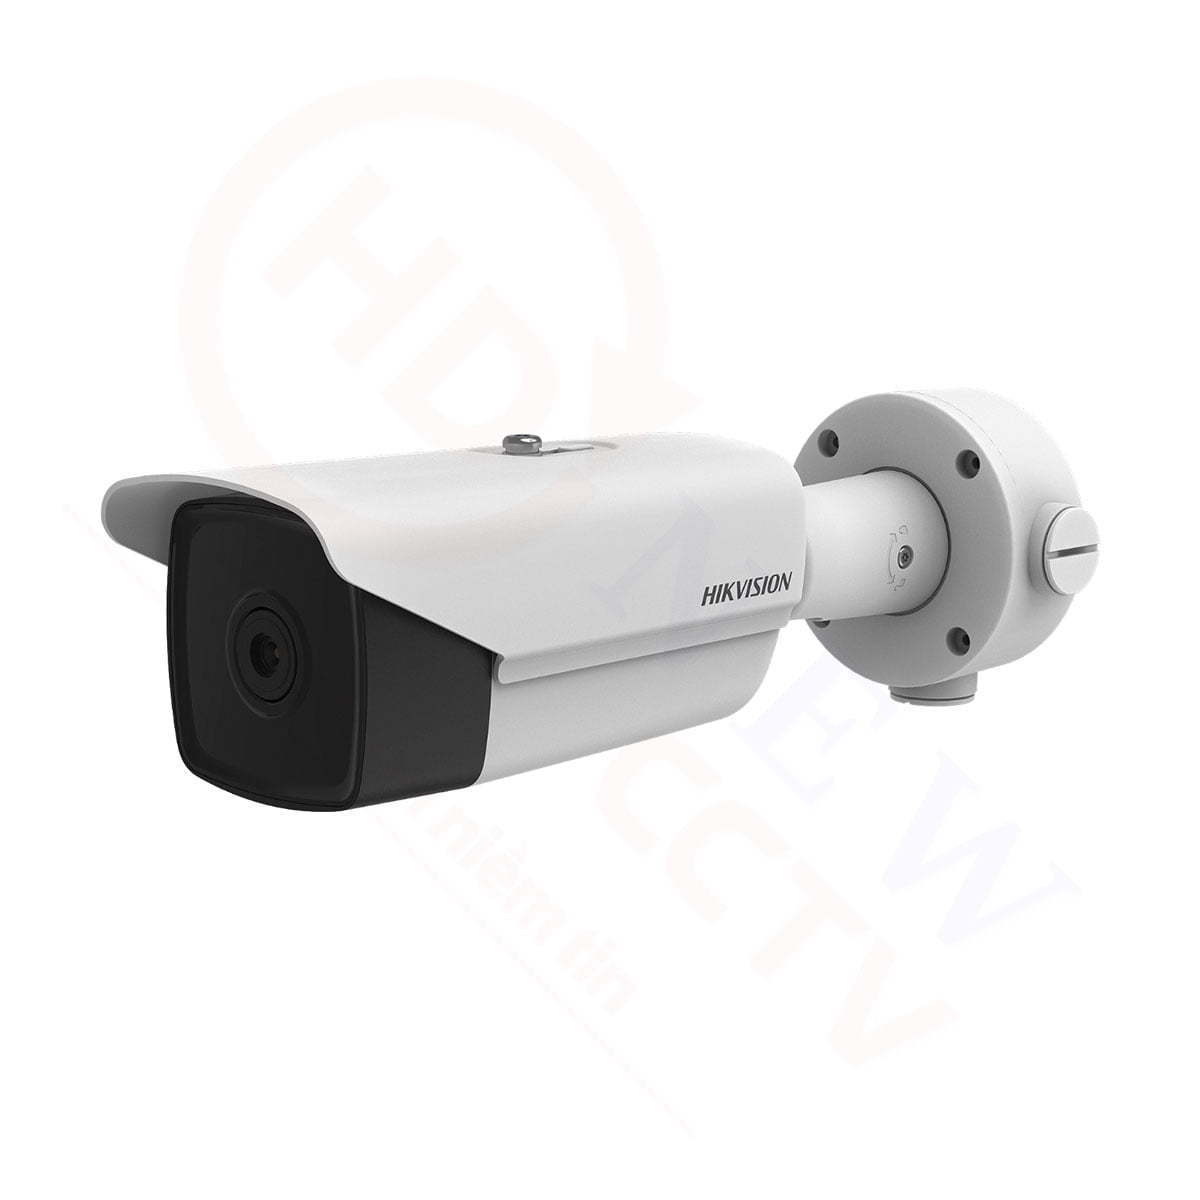 Hikvision DS-2CD1027G0-L   2MP IP PoE Bullet Camera (ColorVu Series)   HDnew CCTV